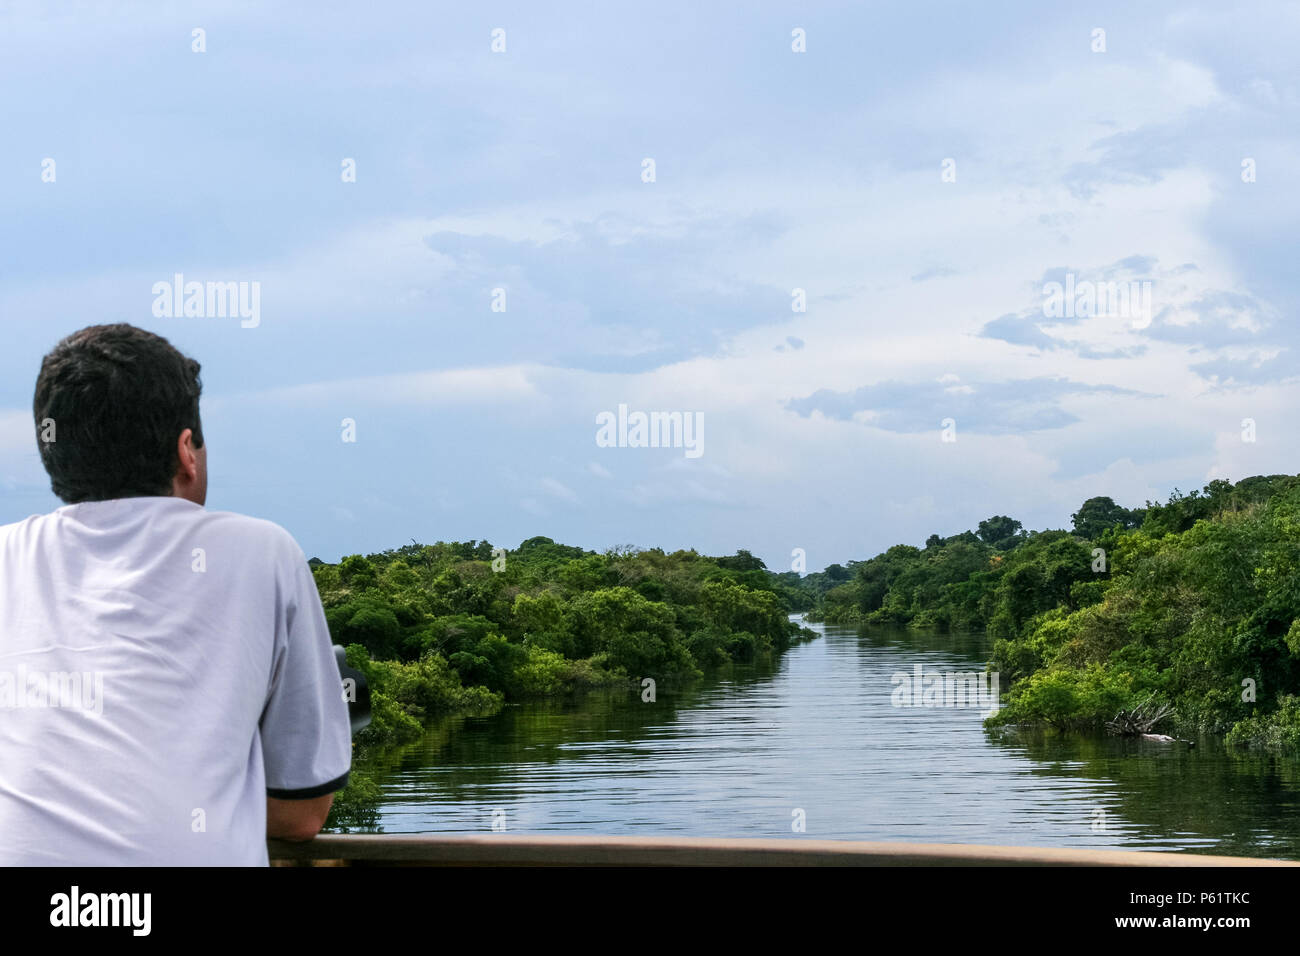 Amazonas, Brazil. A tourist contemplating the beautiful view of the Negro River during the flood season with the Amazon rainforest in the background. - Stock Image